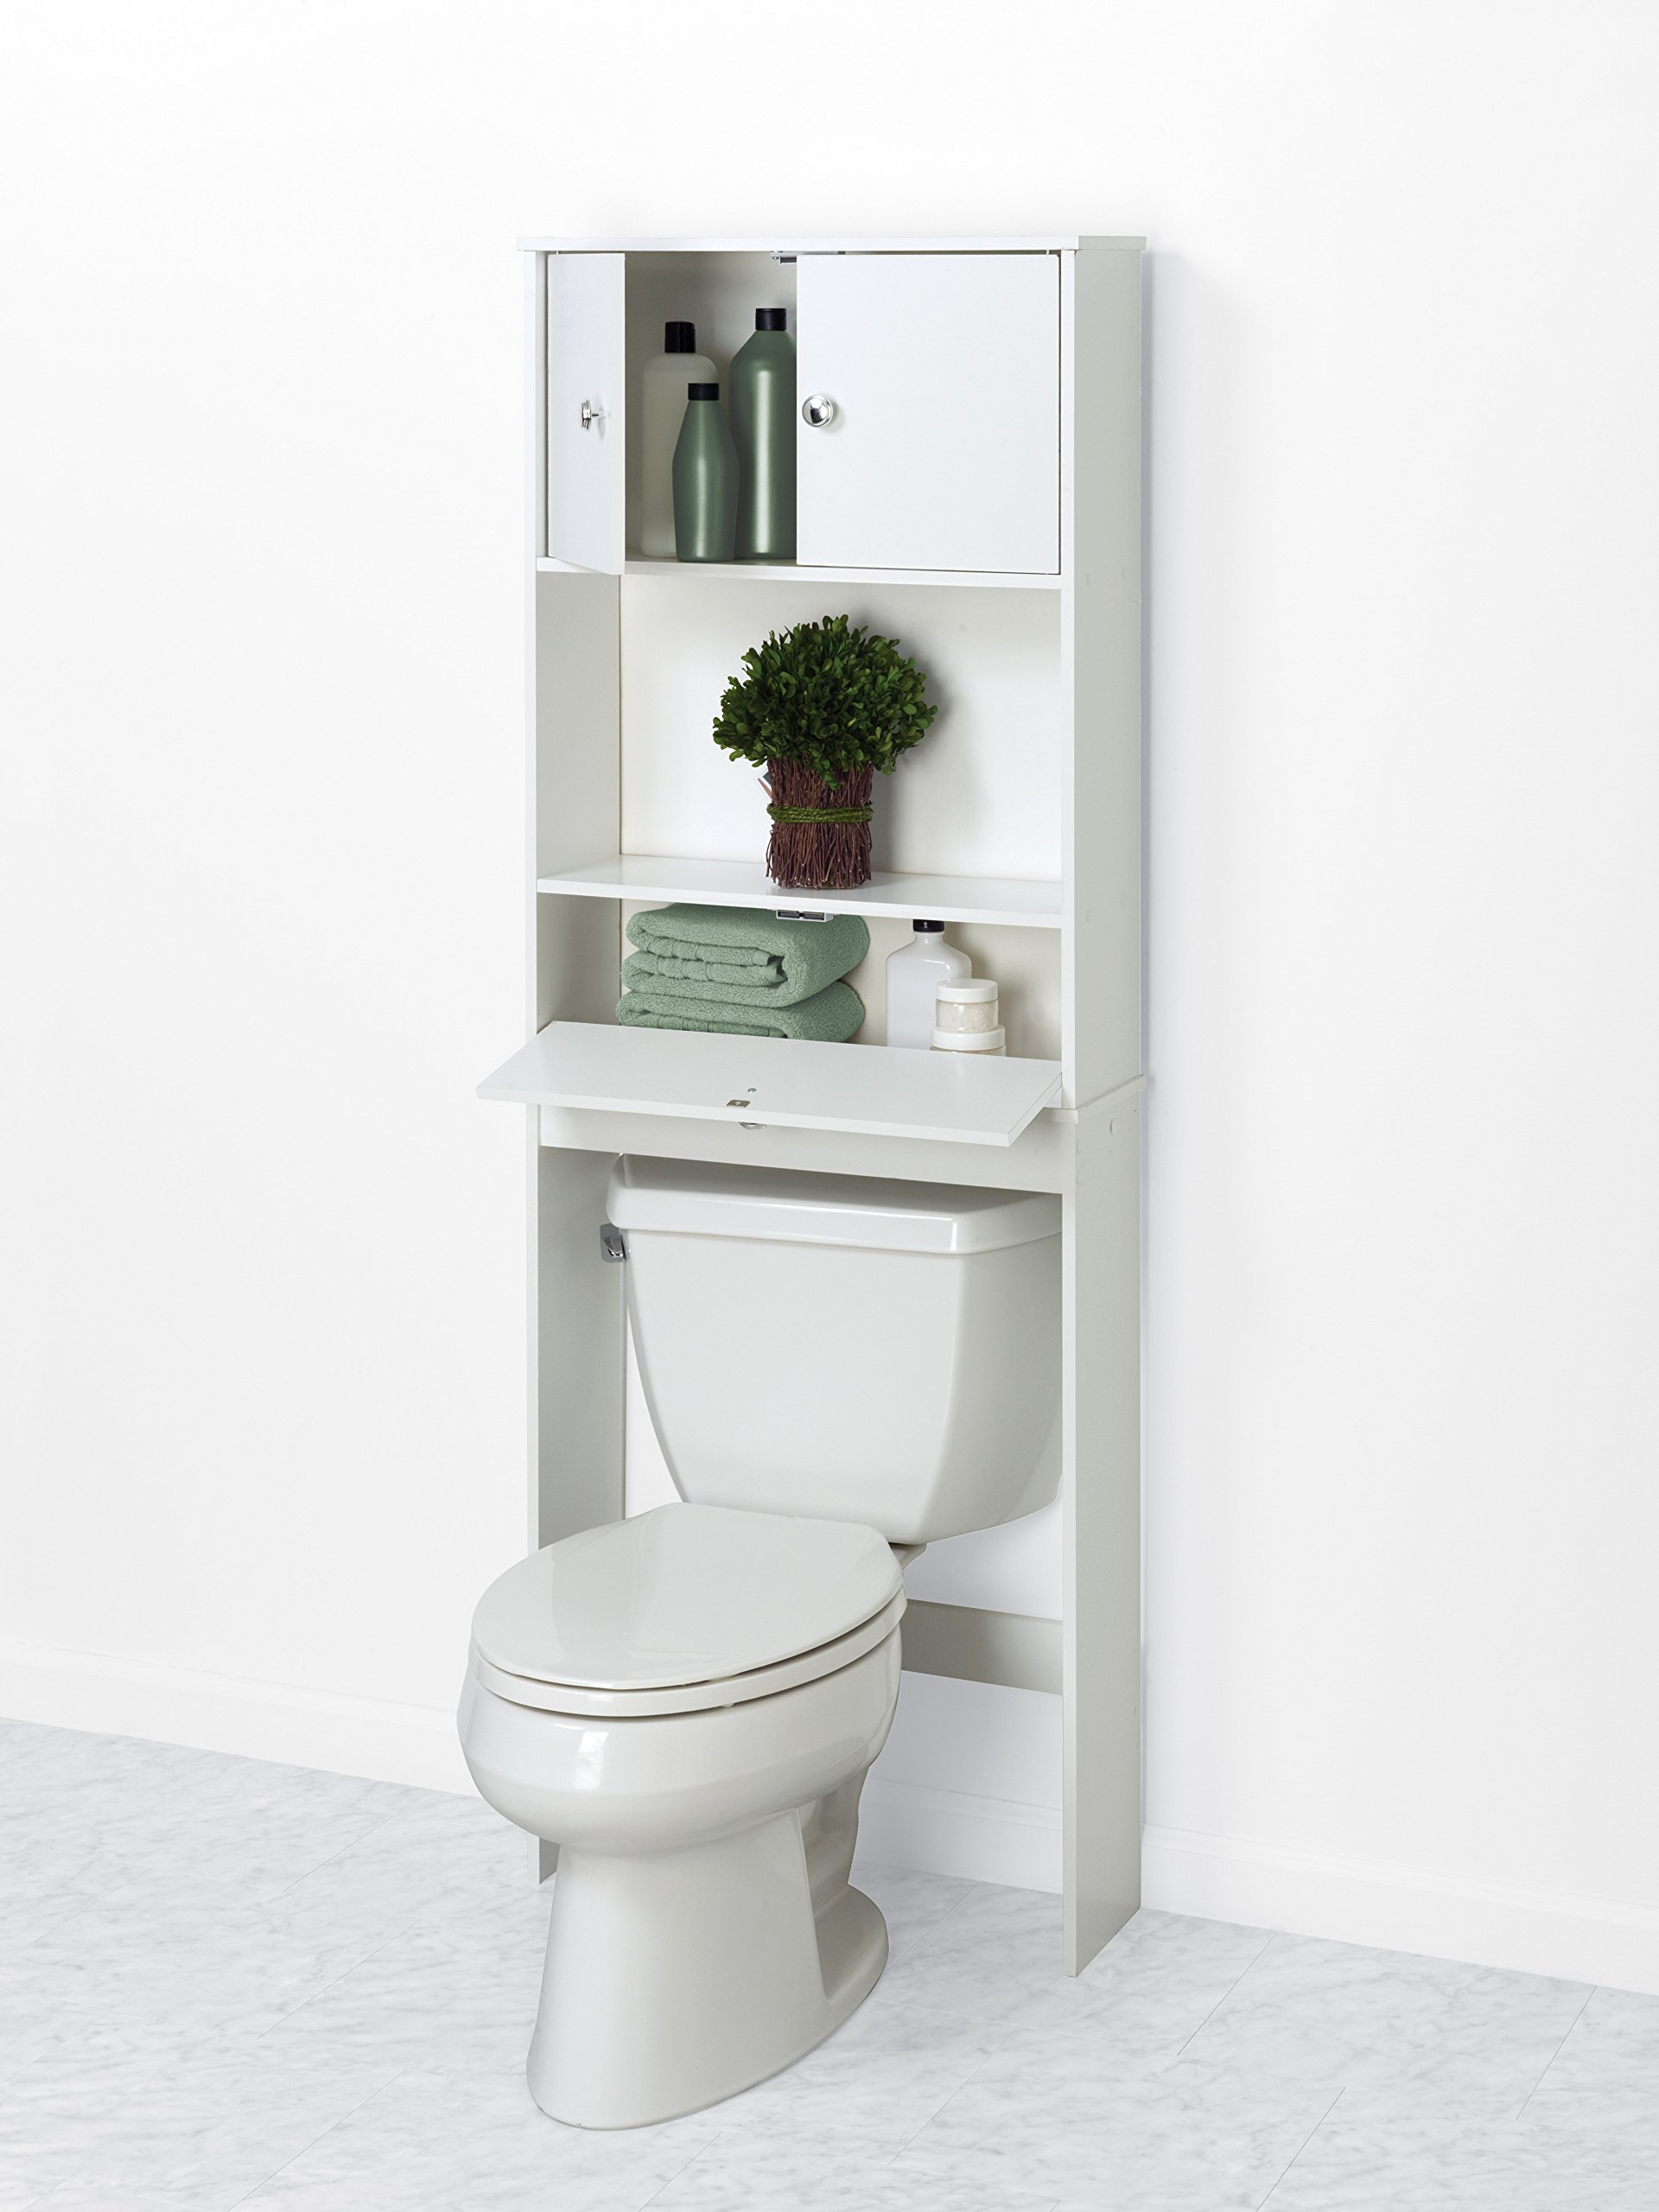 bathroom toilet cabinet the white spacesaver rakuten choice best space over product storage bestchoiceproducts saver products shop